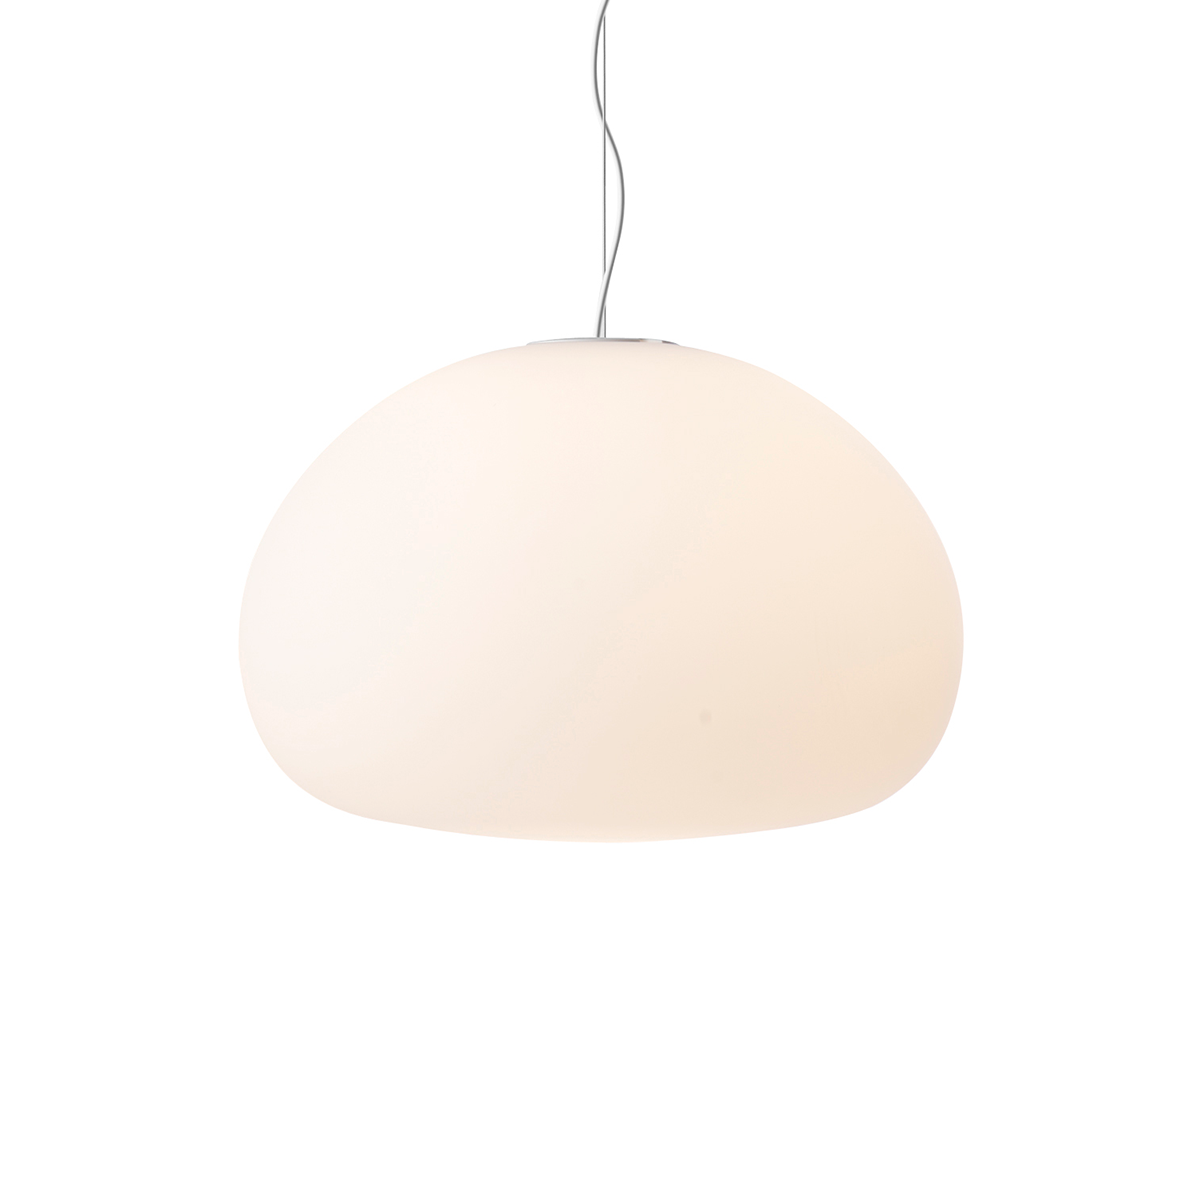 Muuto Fluid Suspension Lamp 漂浮 霧白玻璃 吊燈